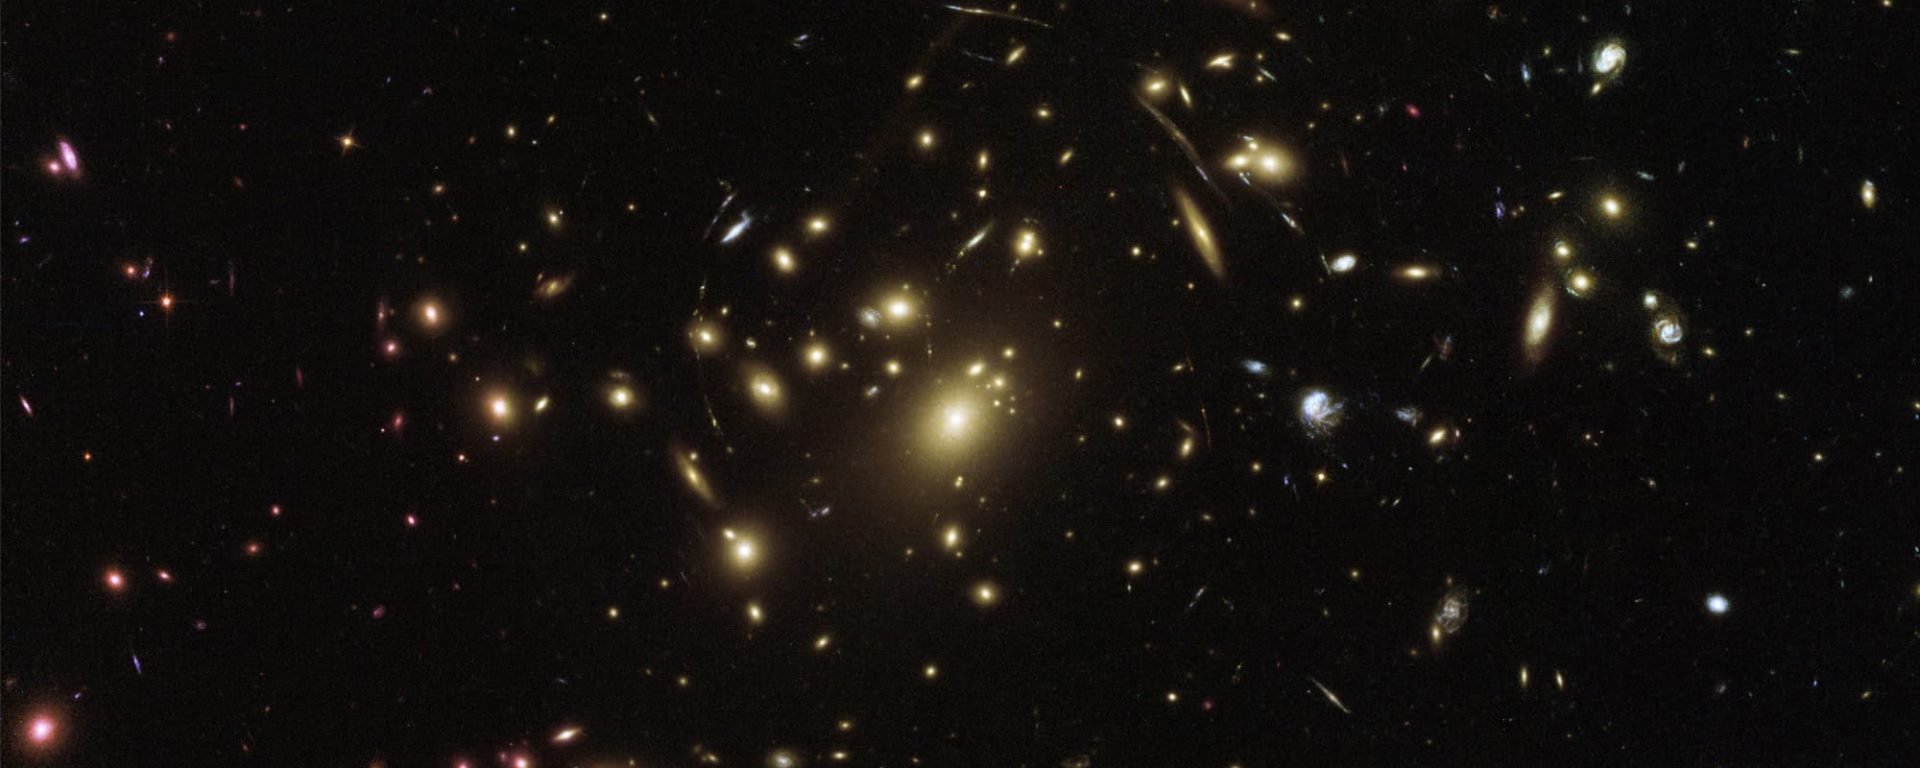 A Hubble Space Telescope image of Galaxy cluster Abell 2537. The amount of gravity, that is, warping of spacetime, caused by this galaxy is visible through the bending of the light of stars and galaxies behind Abell. The galaxy works as a lens. All is predicted by Einstein's General Relativity.